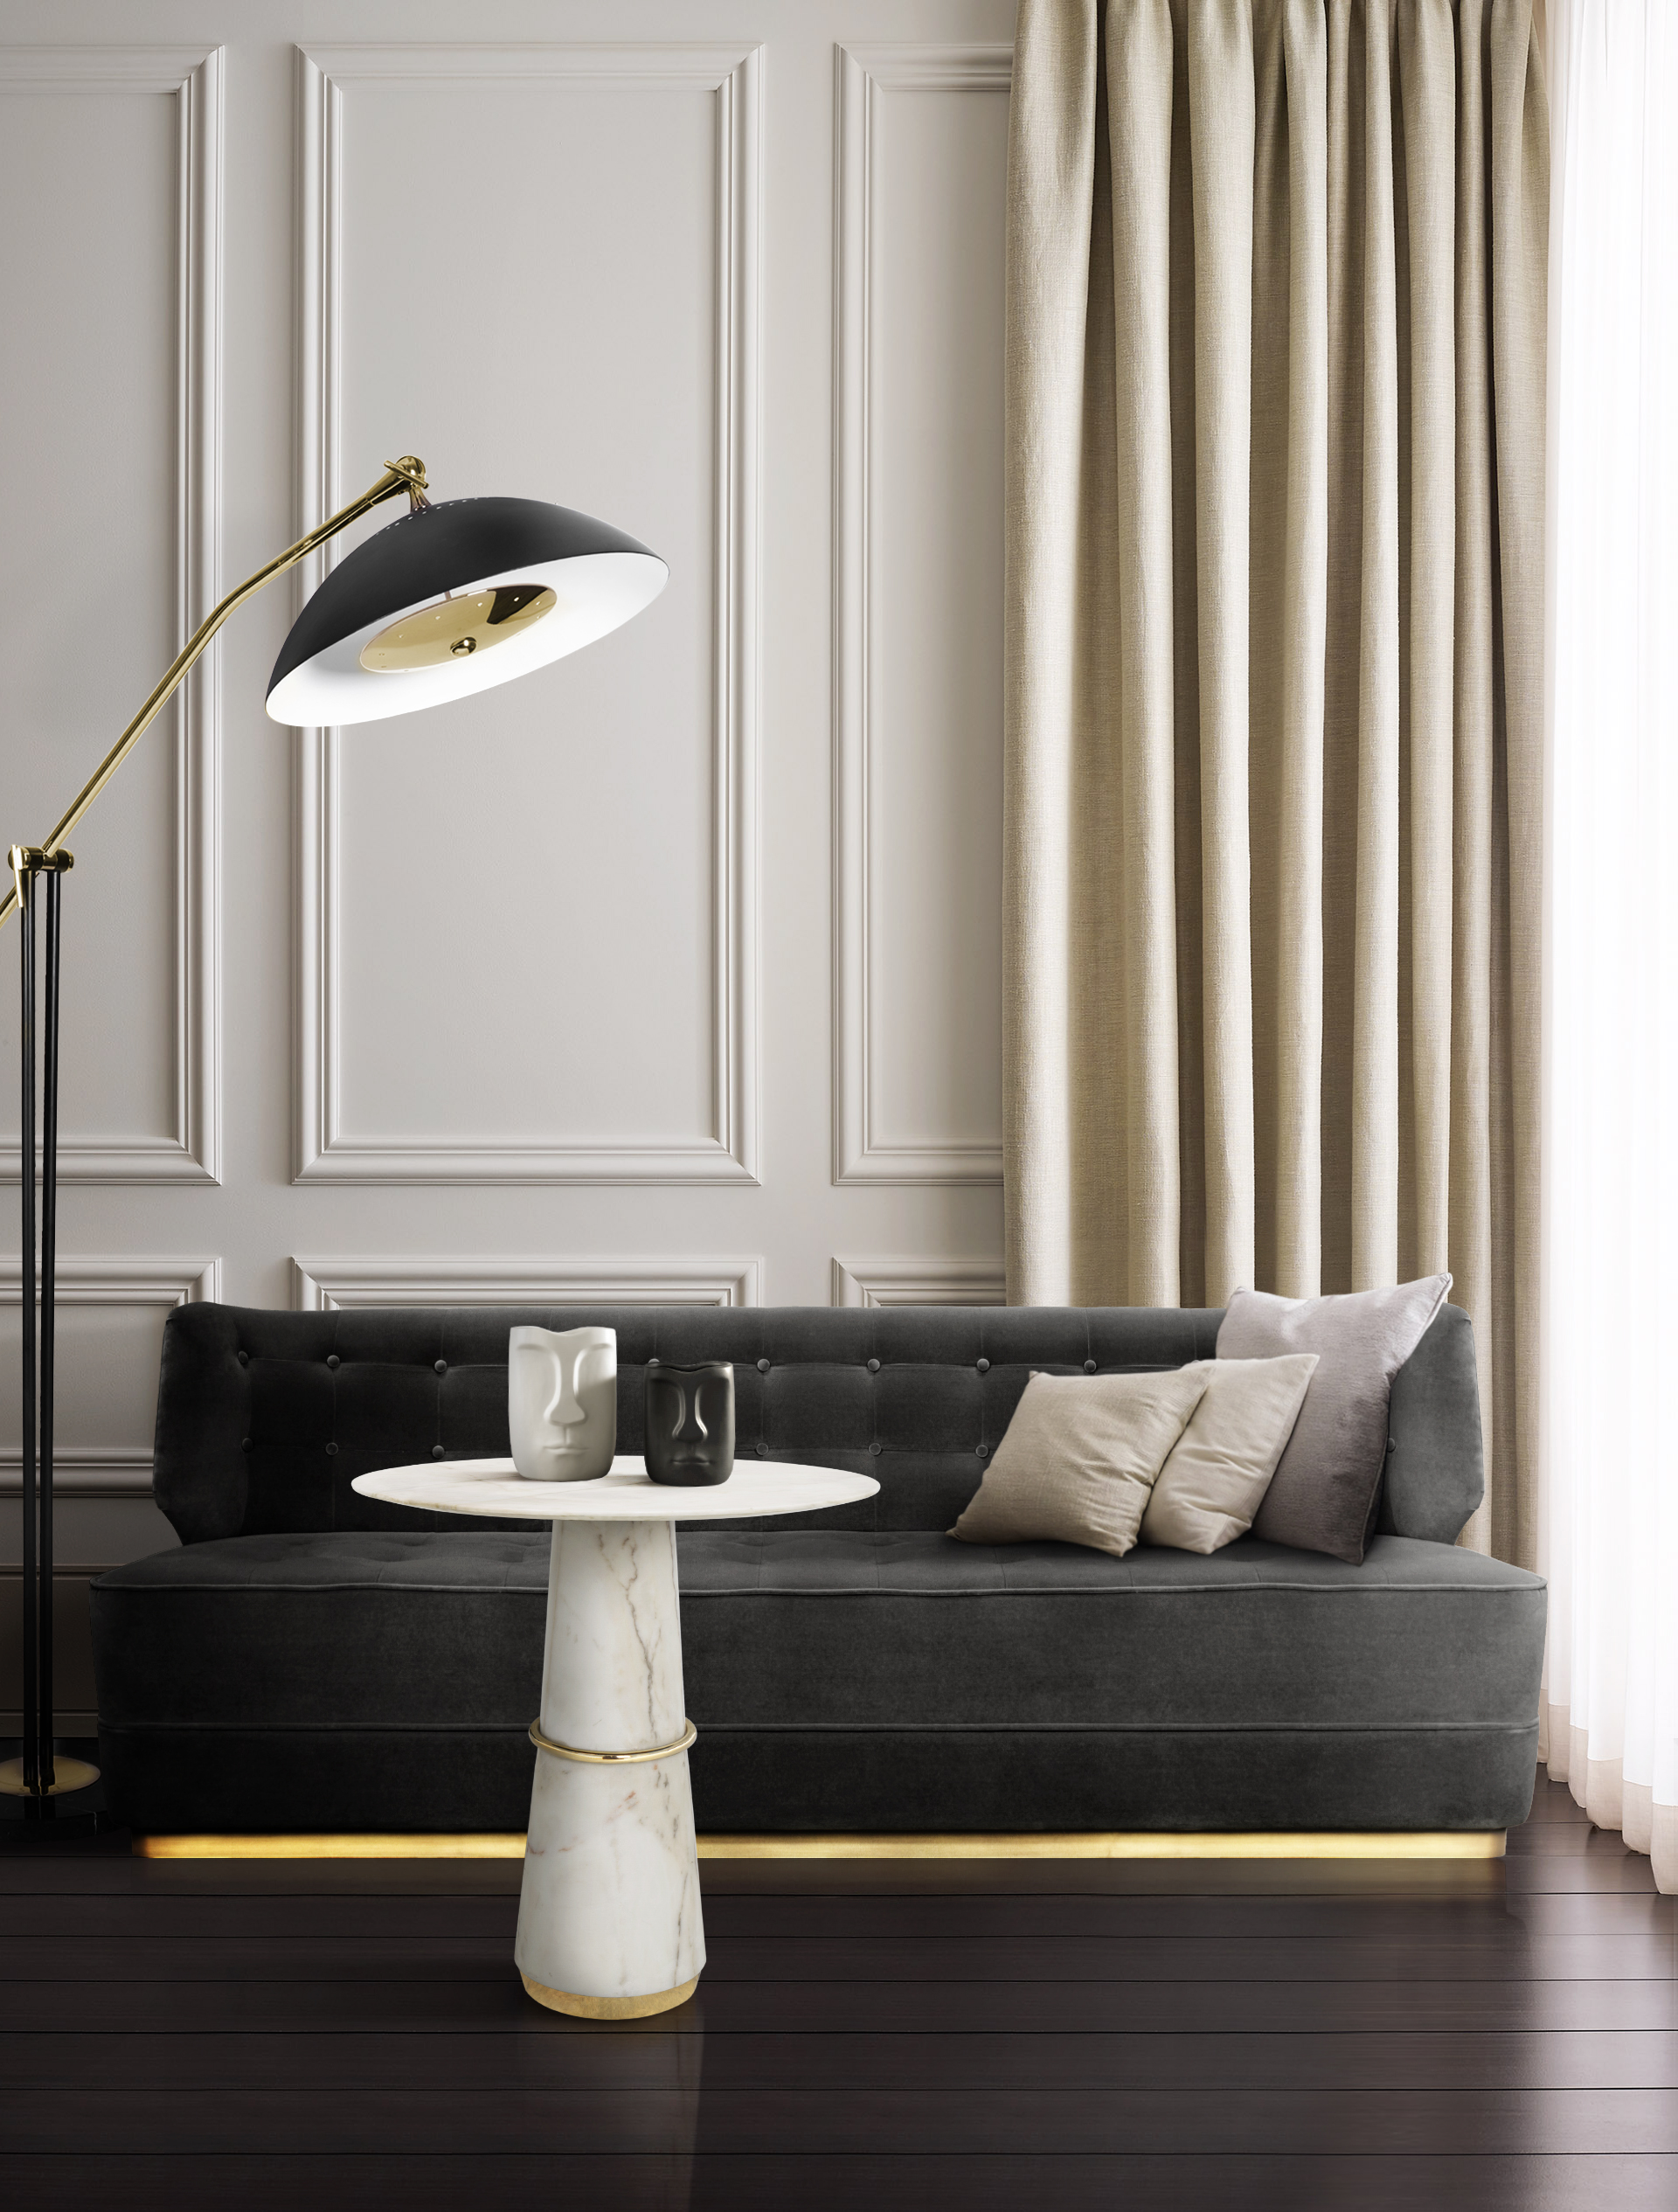 Transform Your Space With These Nordic Design Inspired Pieces From This Portuguese Lighting Brand! nordic design Transform Your Space With These Nordic Design Inspired Pieces From This Portuguese Lighting Brand! 3 6